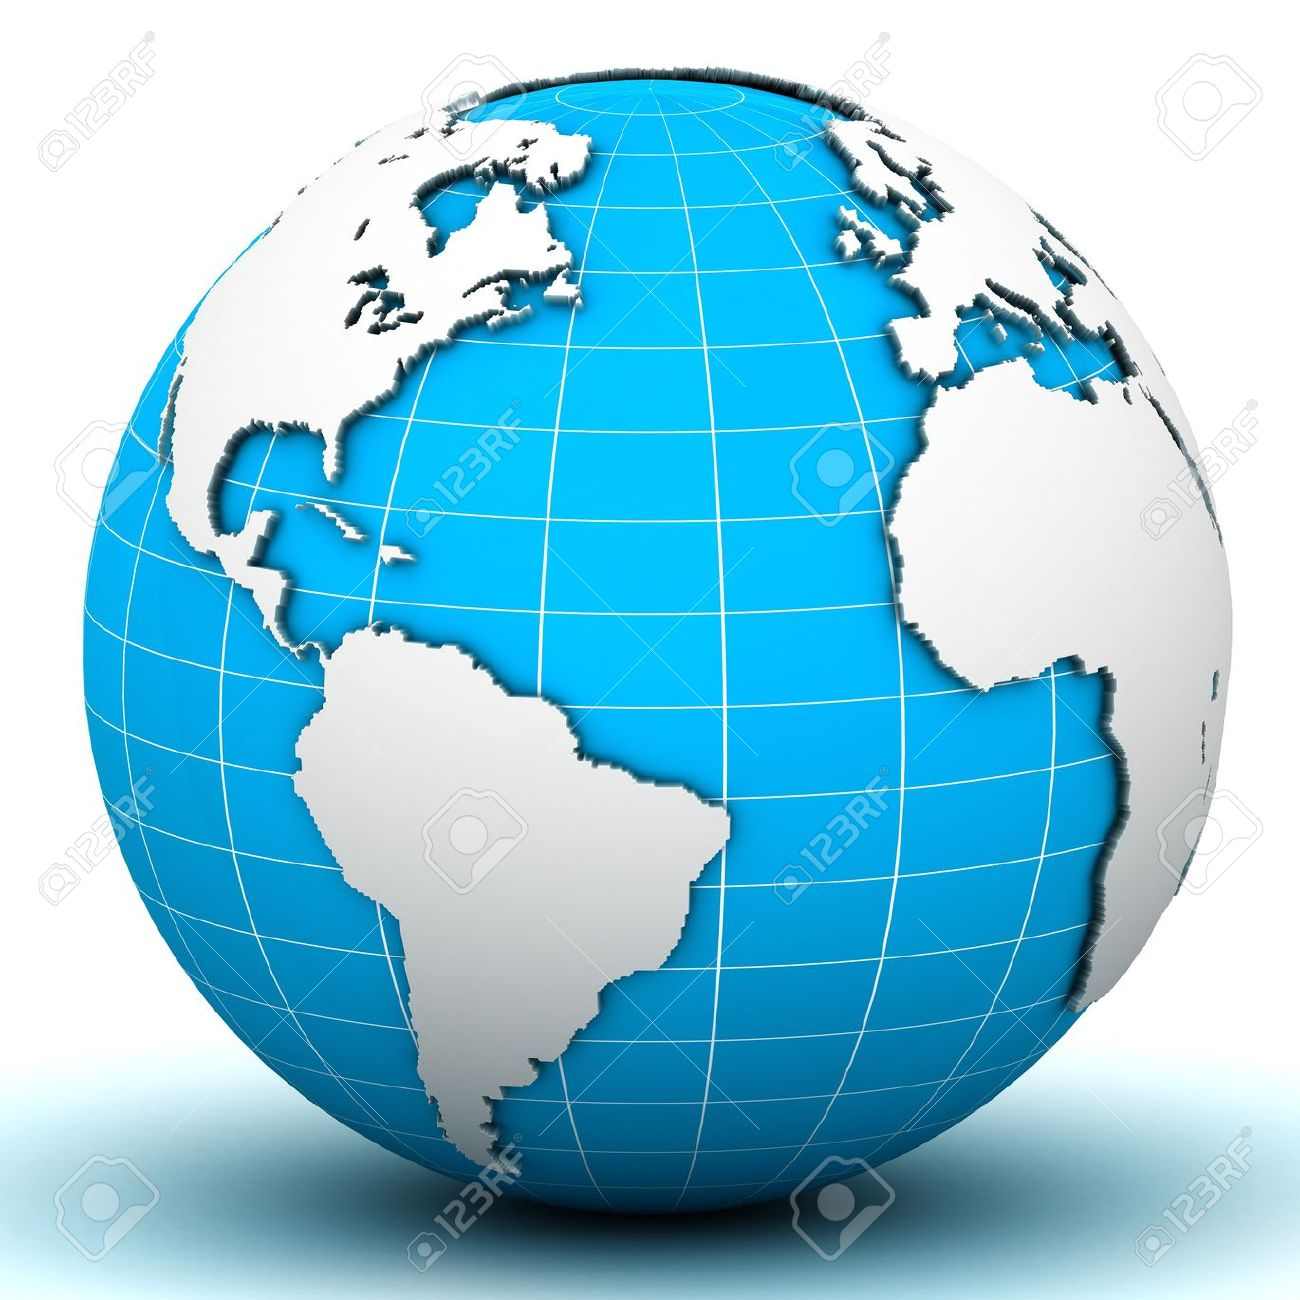 Globe Map Pictures.World Globe Map Stock Photo Picture And Royalty Free Image Image